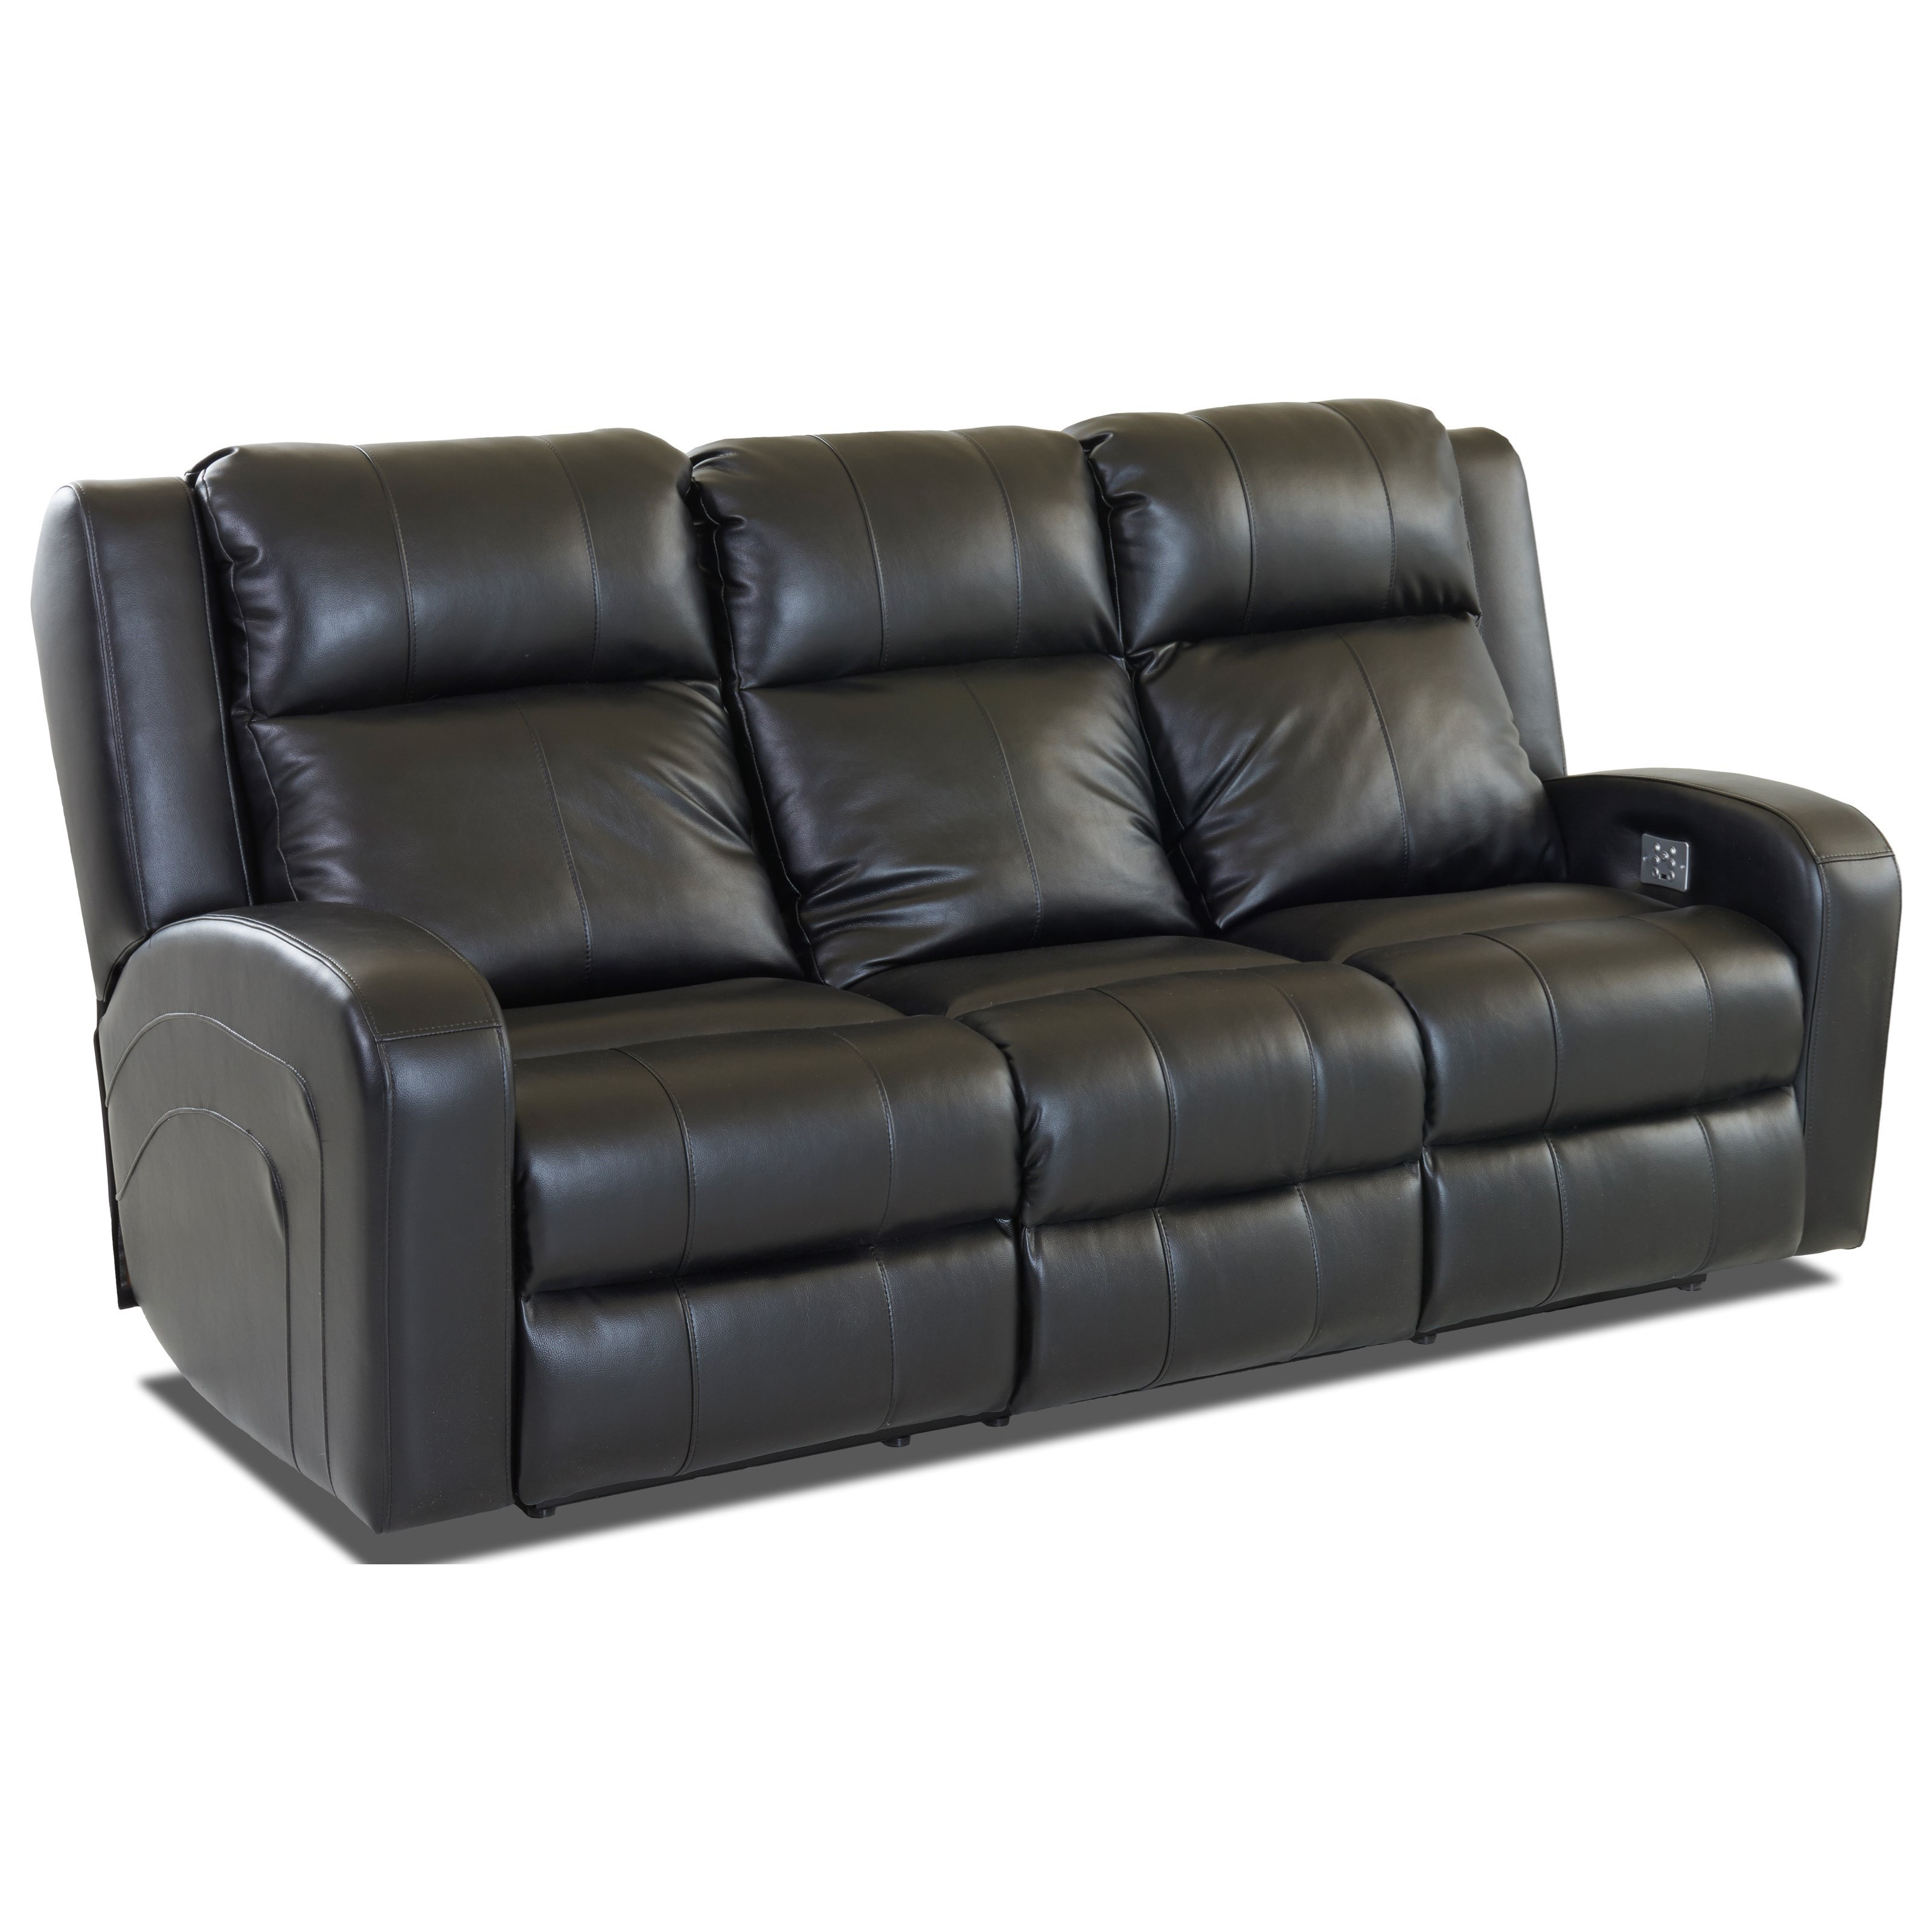 two cushion power reclining sofa leather company klaussner robinson casual value